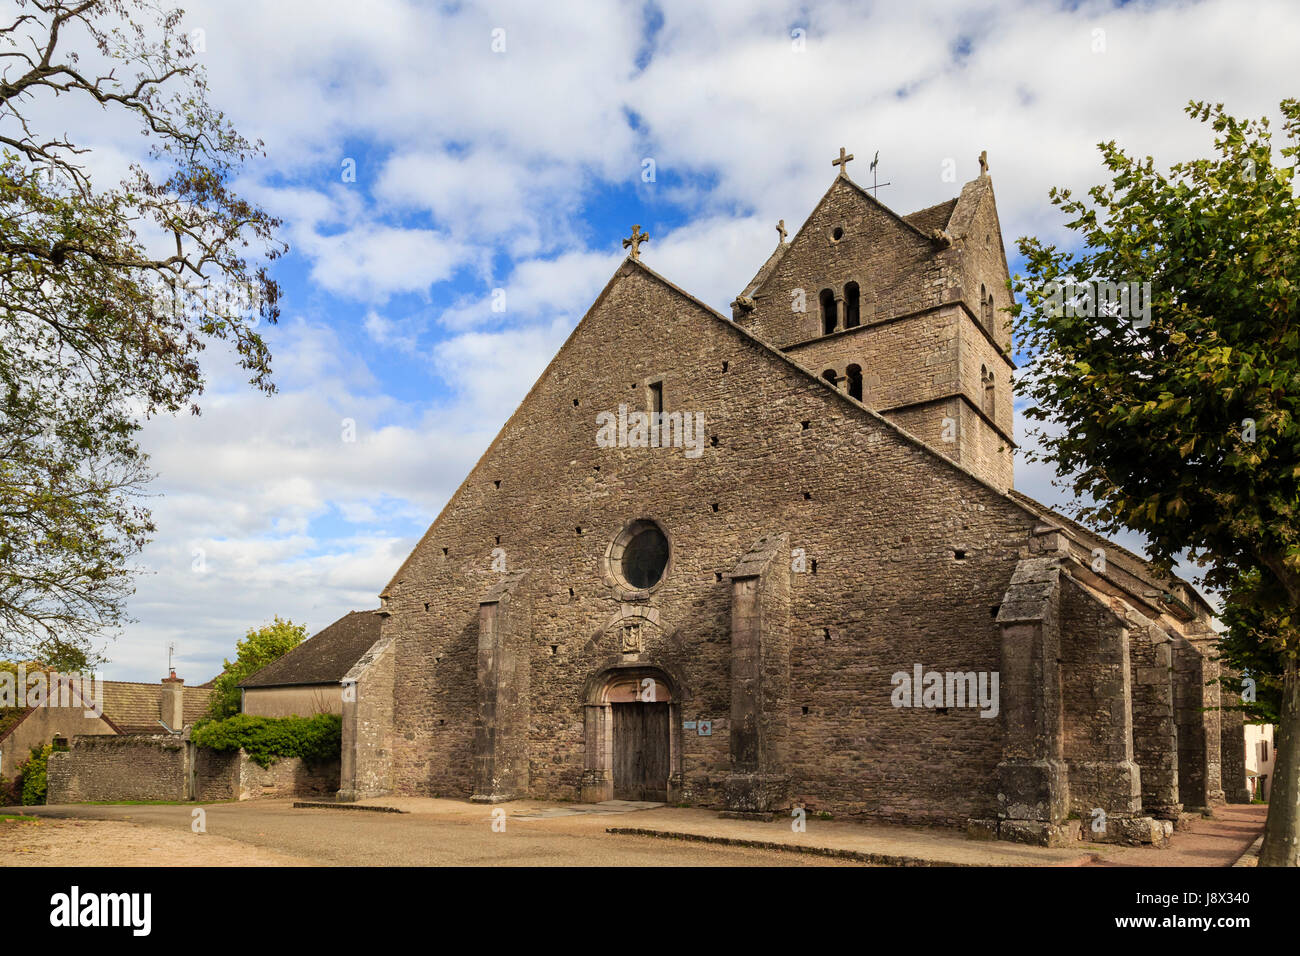 France, Saone et Loire, Mercurey, Touches hamlet, church - Stock Image